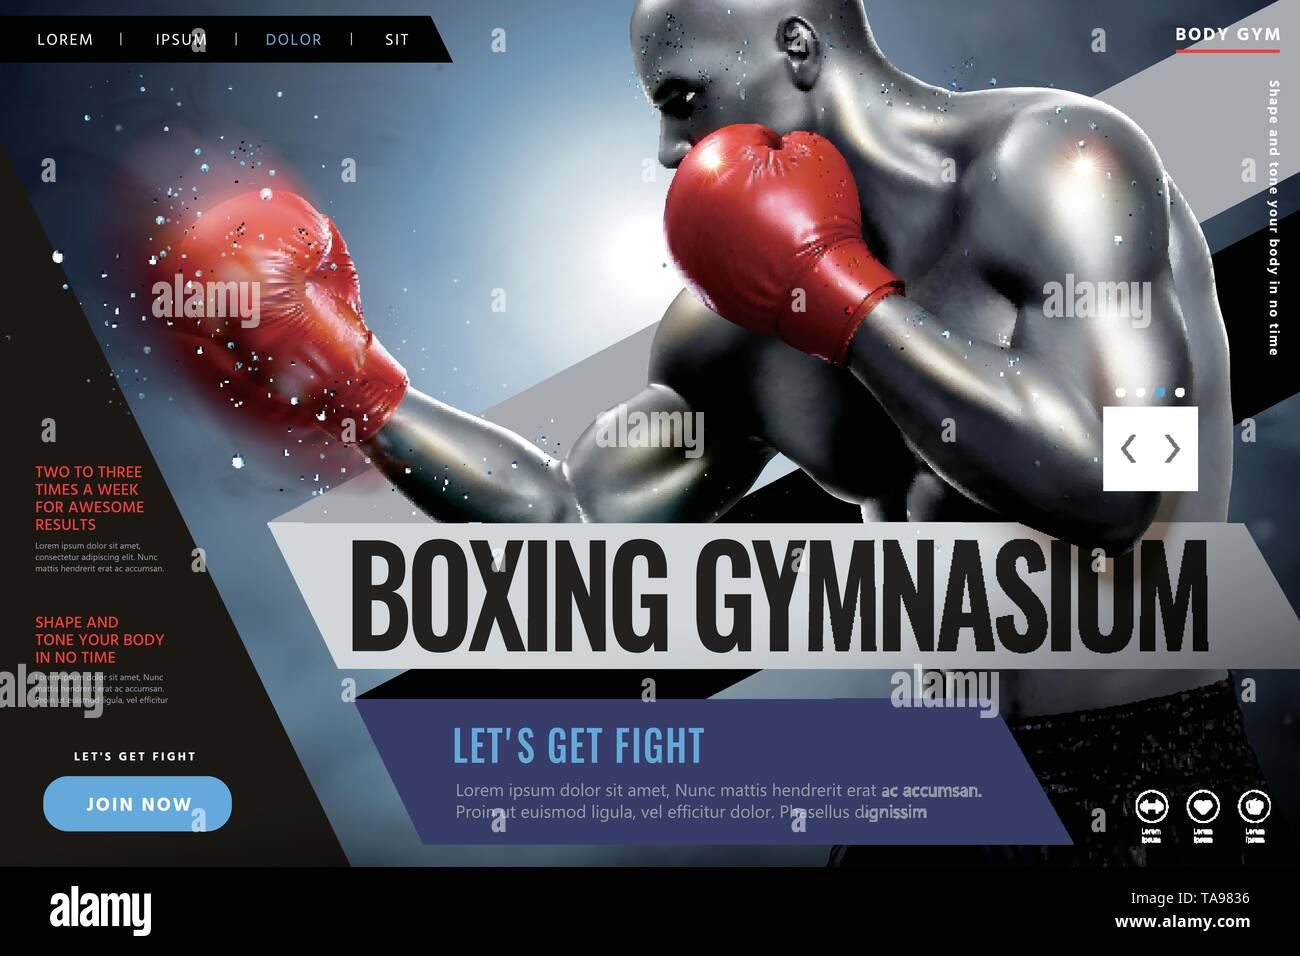 Fitness and boxing website design with strong boxer in 3d illustration - Stock Image